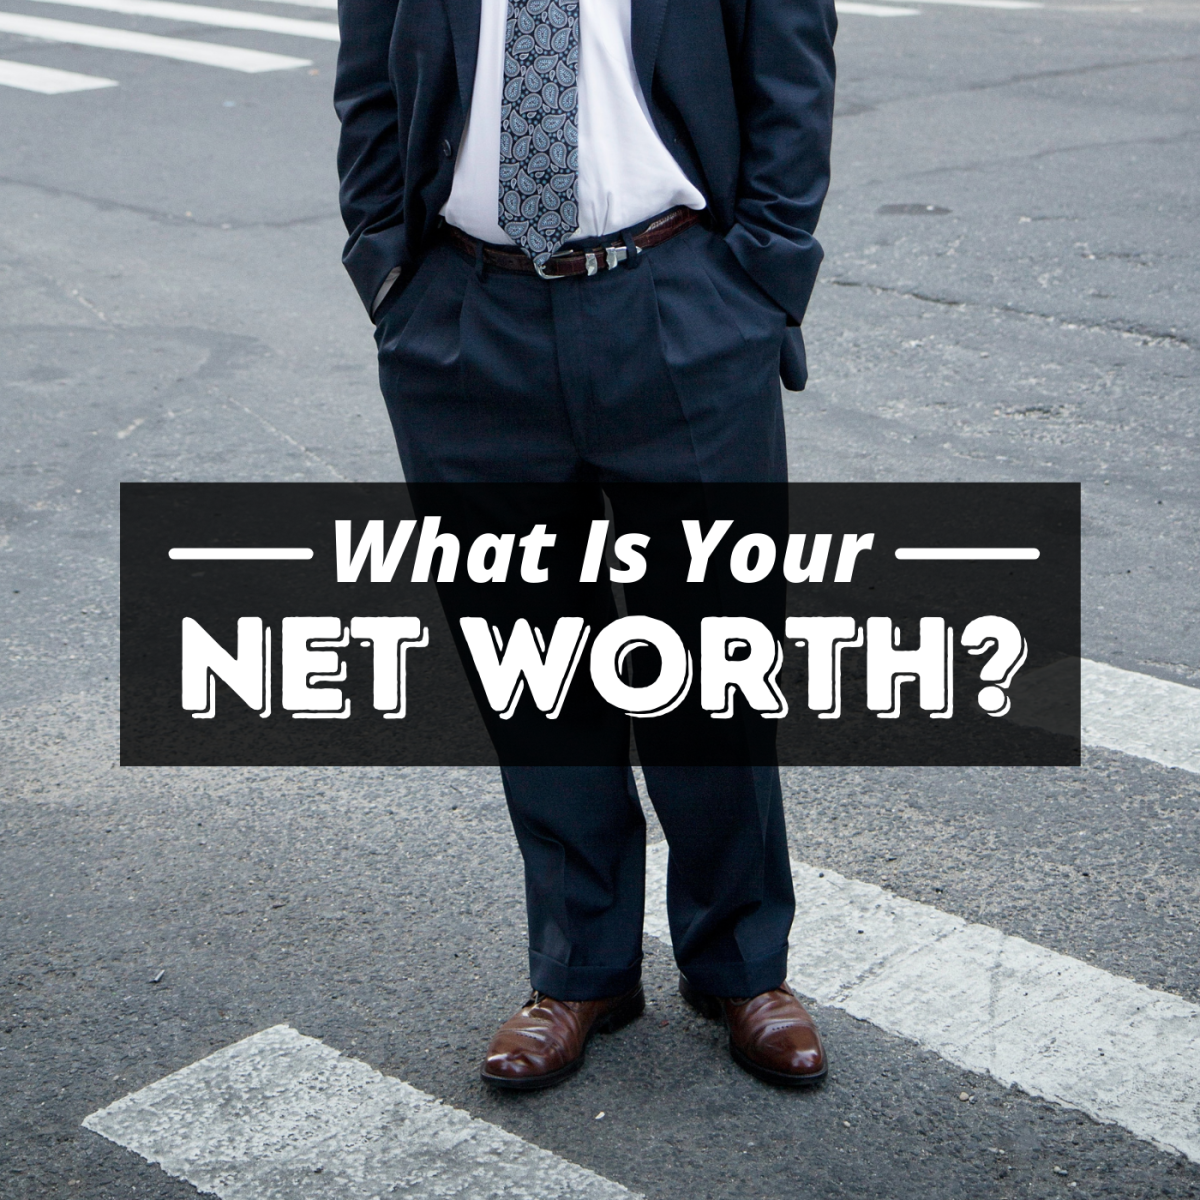 Your net worth is the value of all of your assets minus your debts.